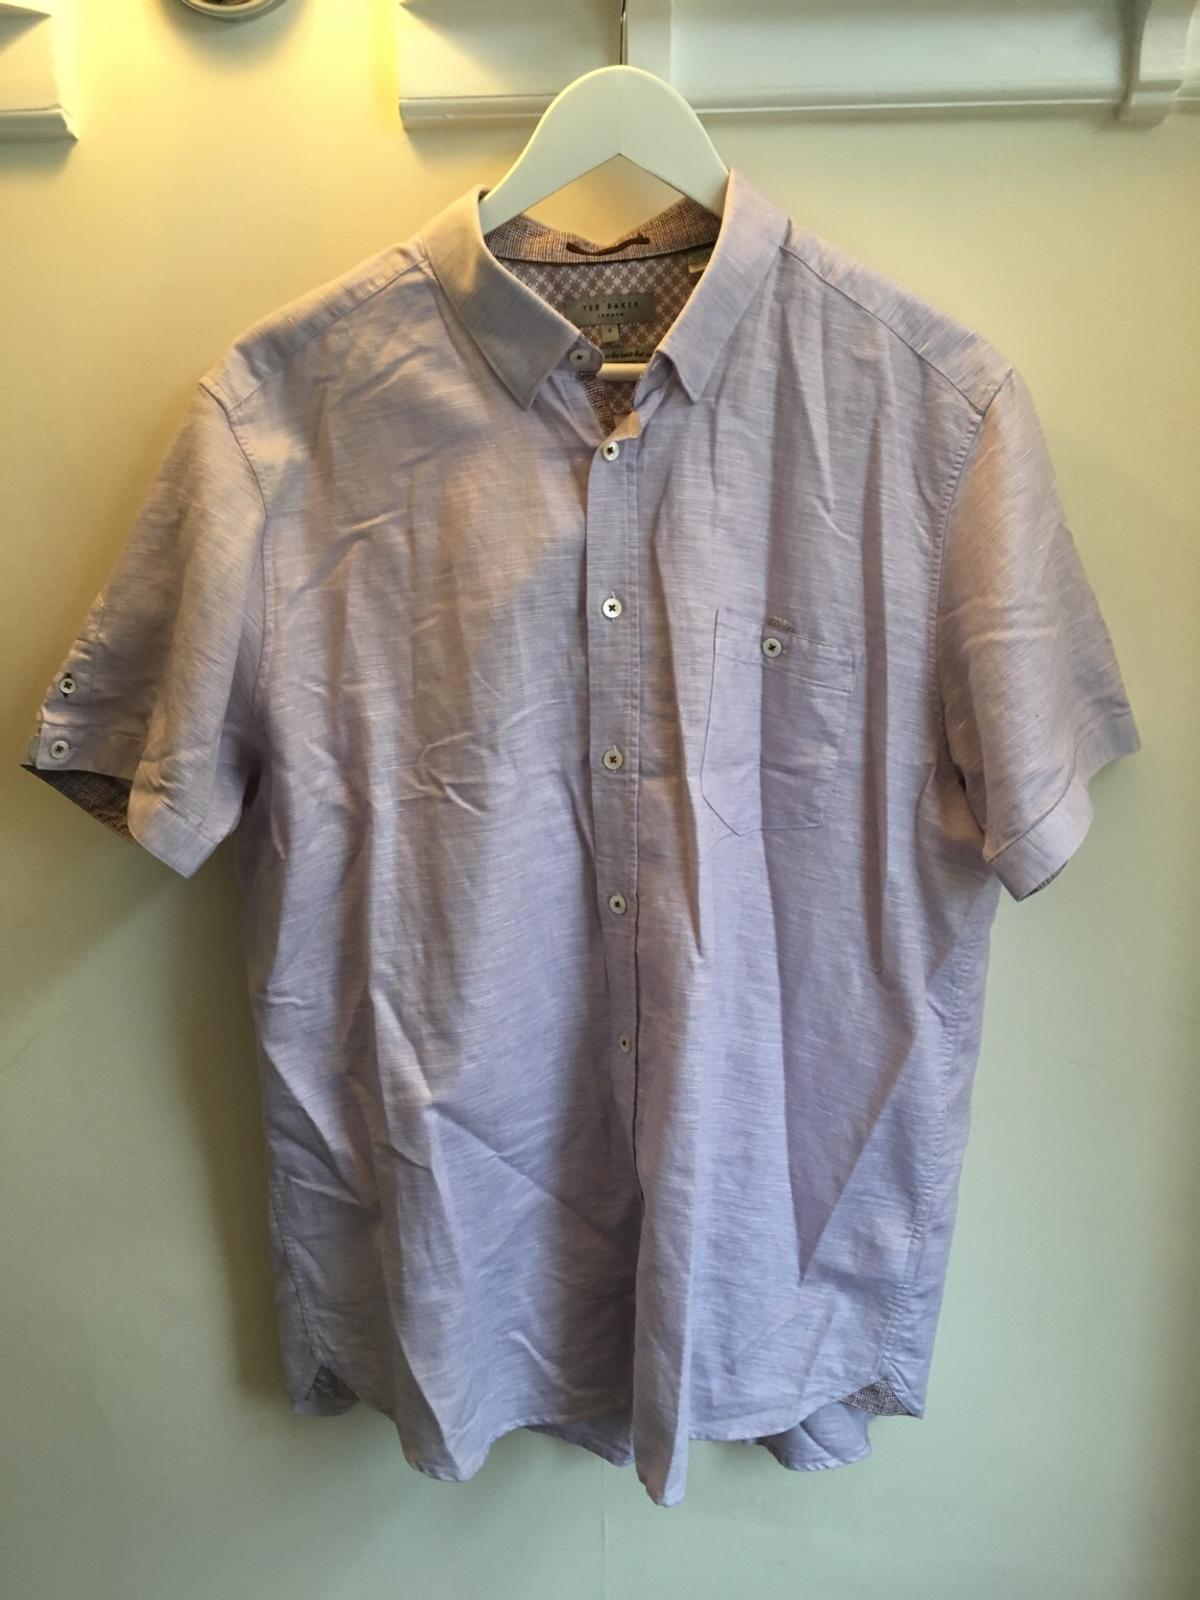 c8949c2faf03 Men s Ted Baker Shirt Size 6 in S40 Chesterfield for £15.00 for sale ...